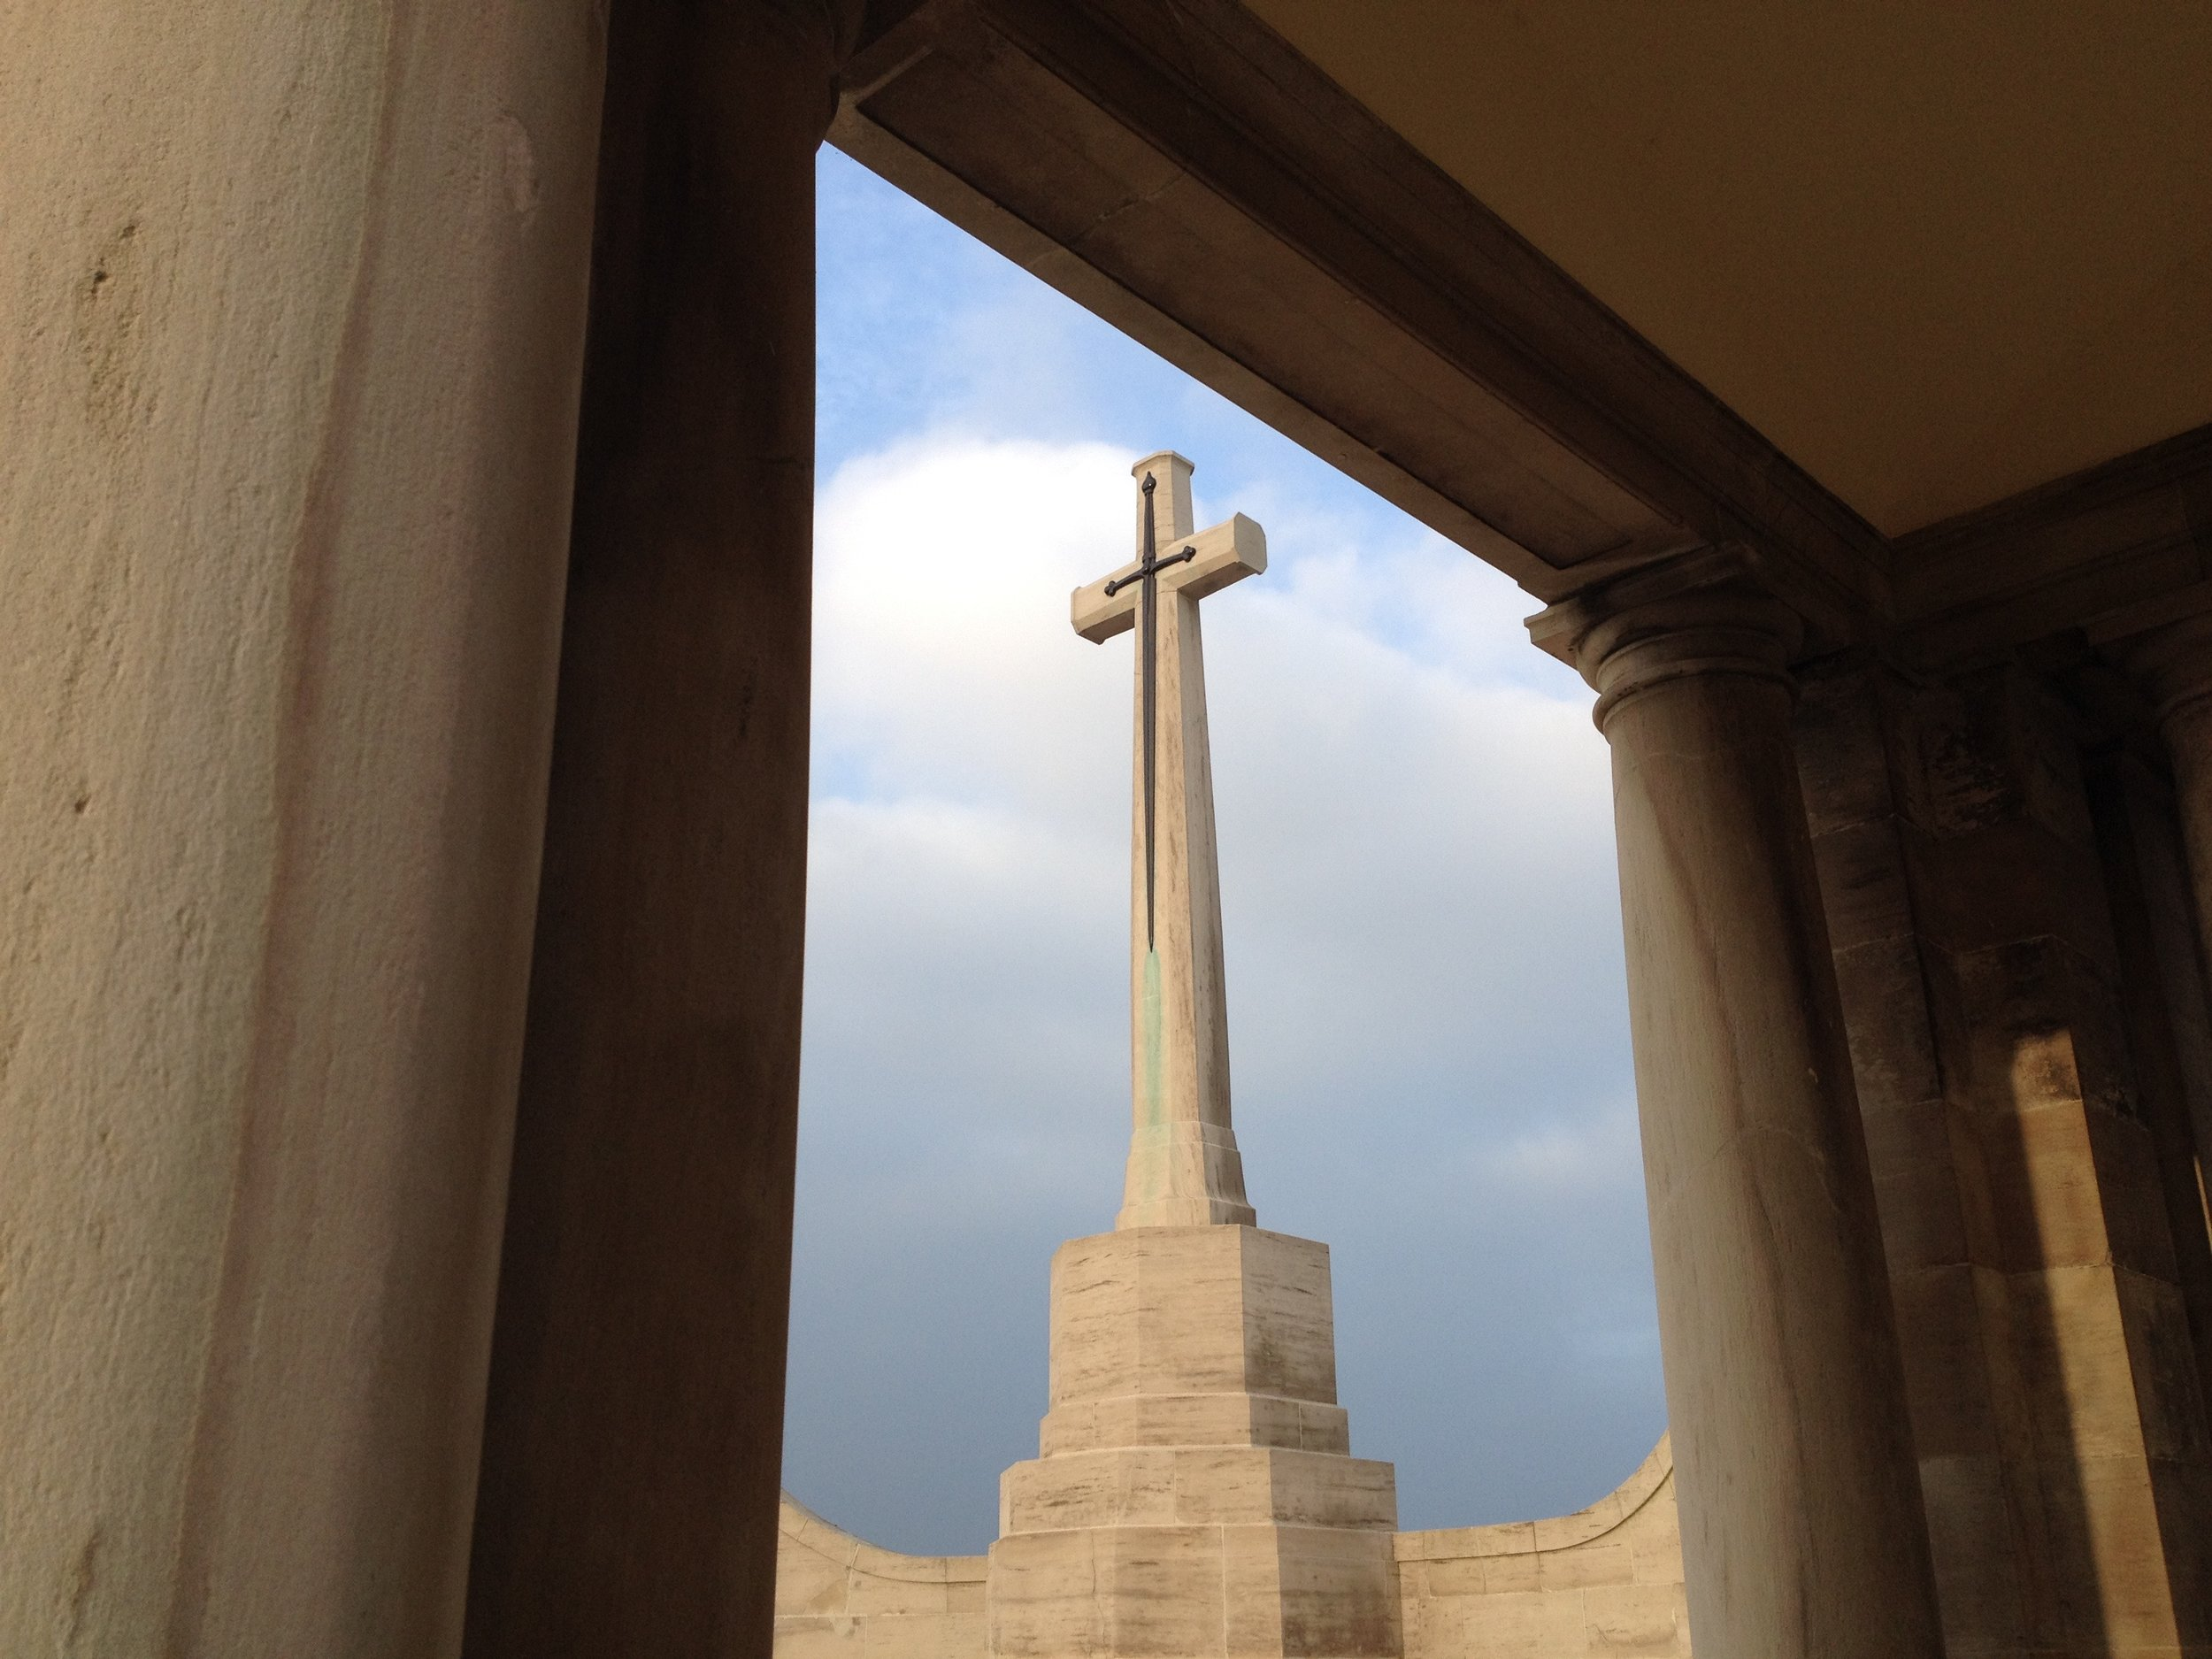 Cross of Sacrifice at the Loos Memorial